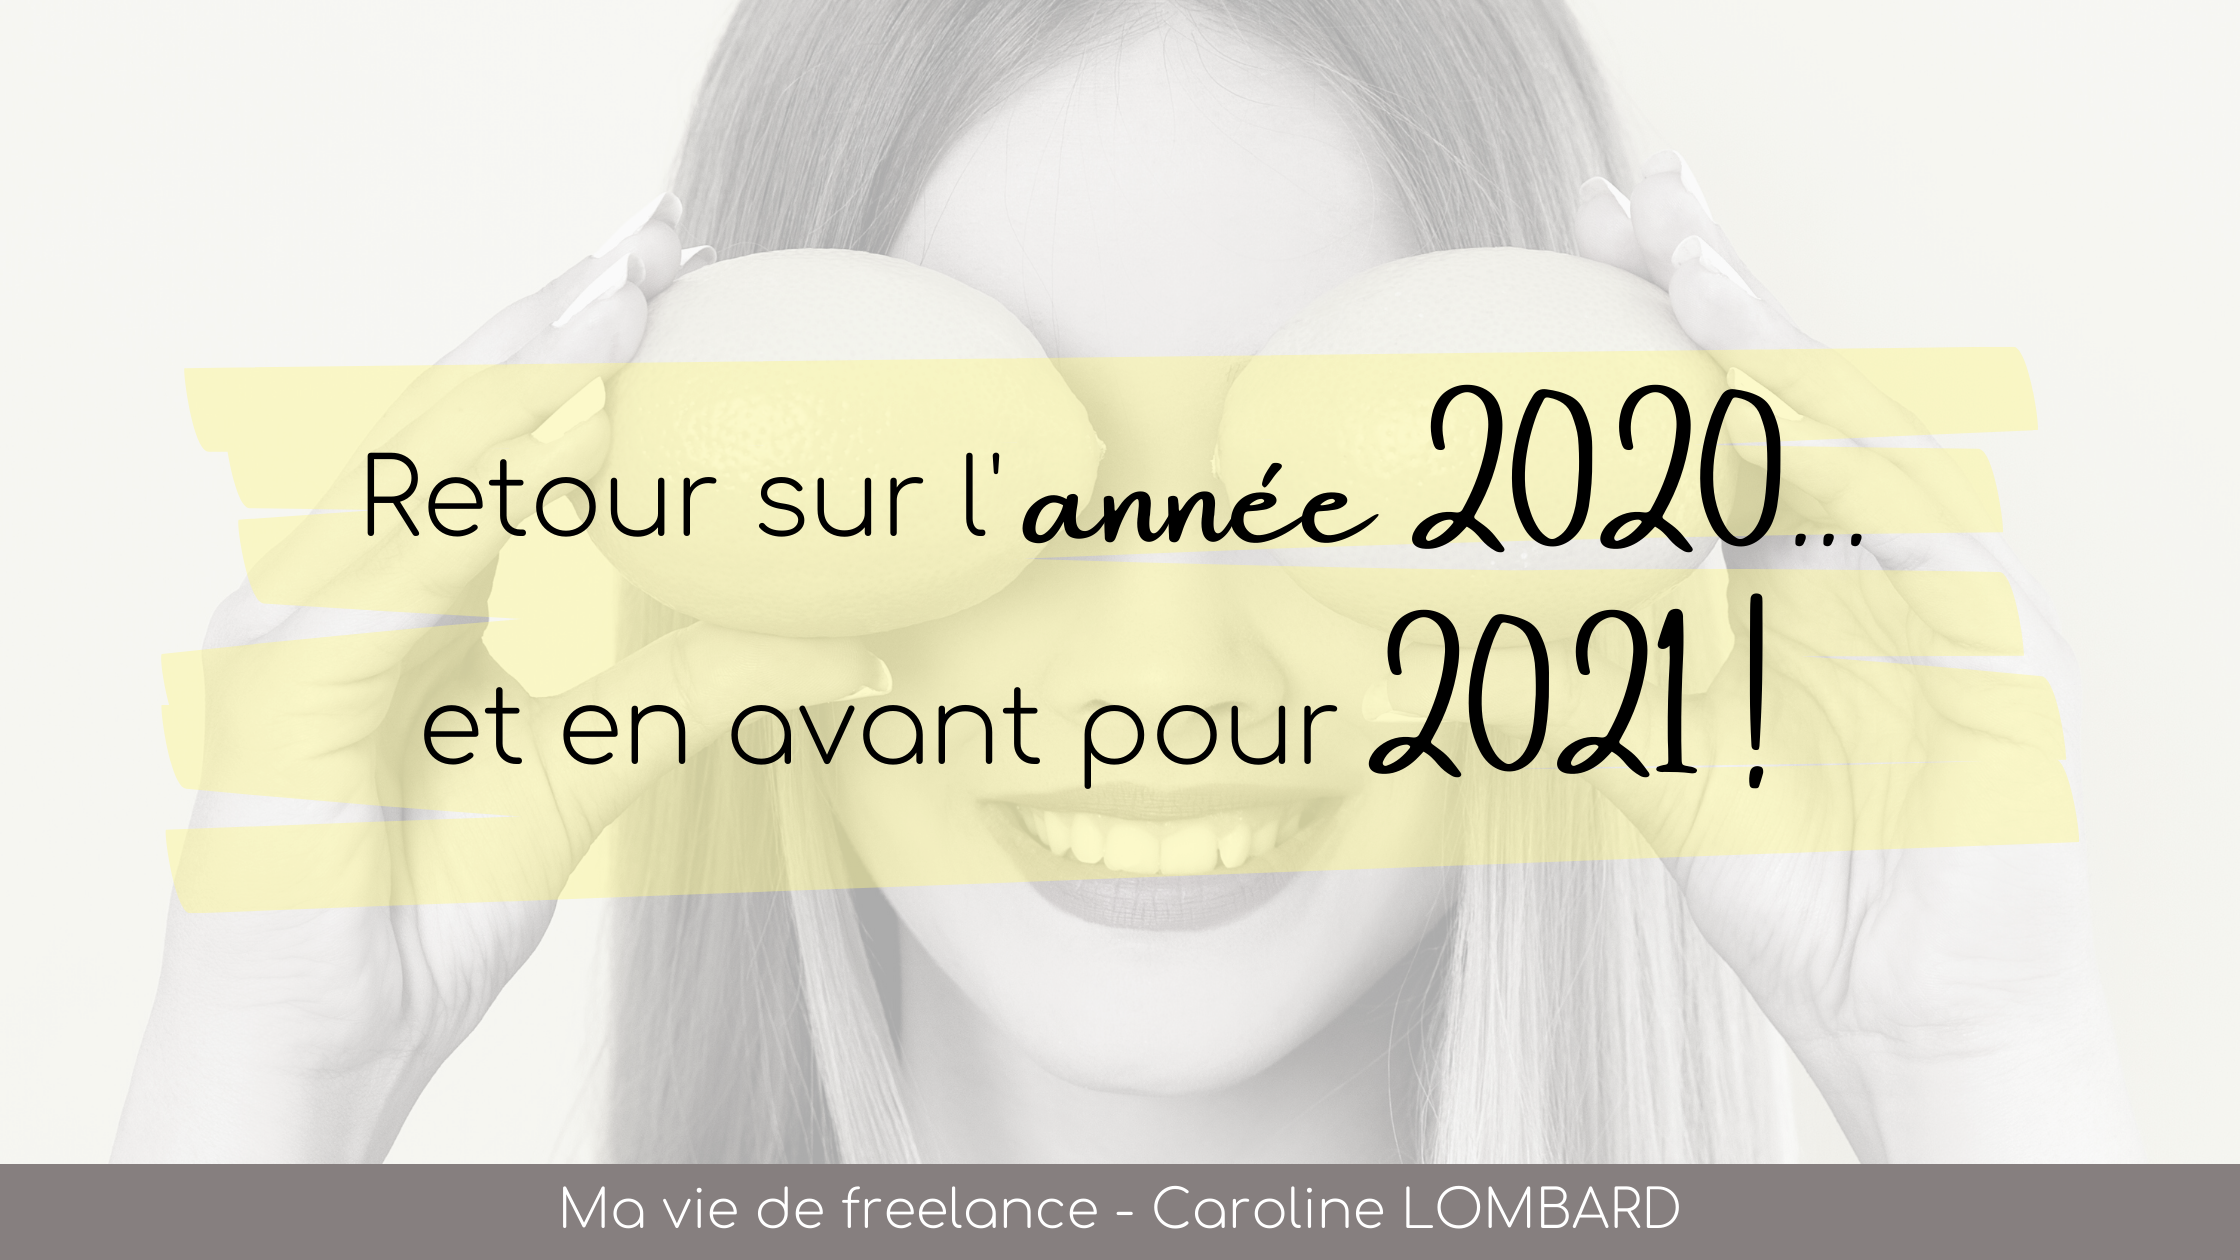 bilan freelance 2020 office manager